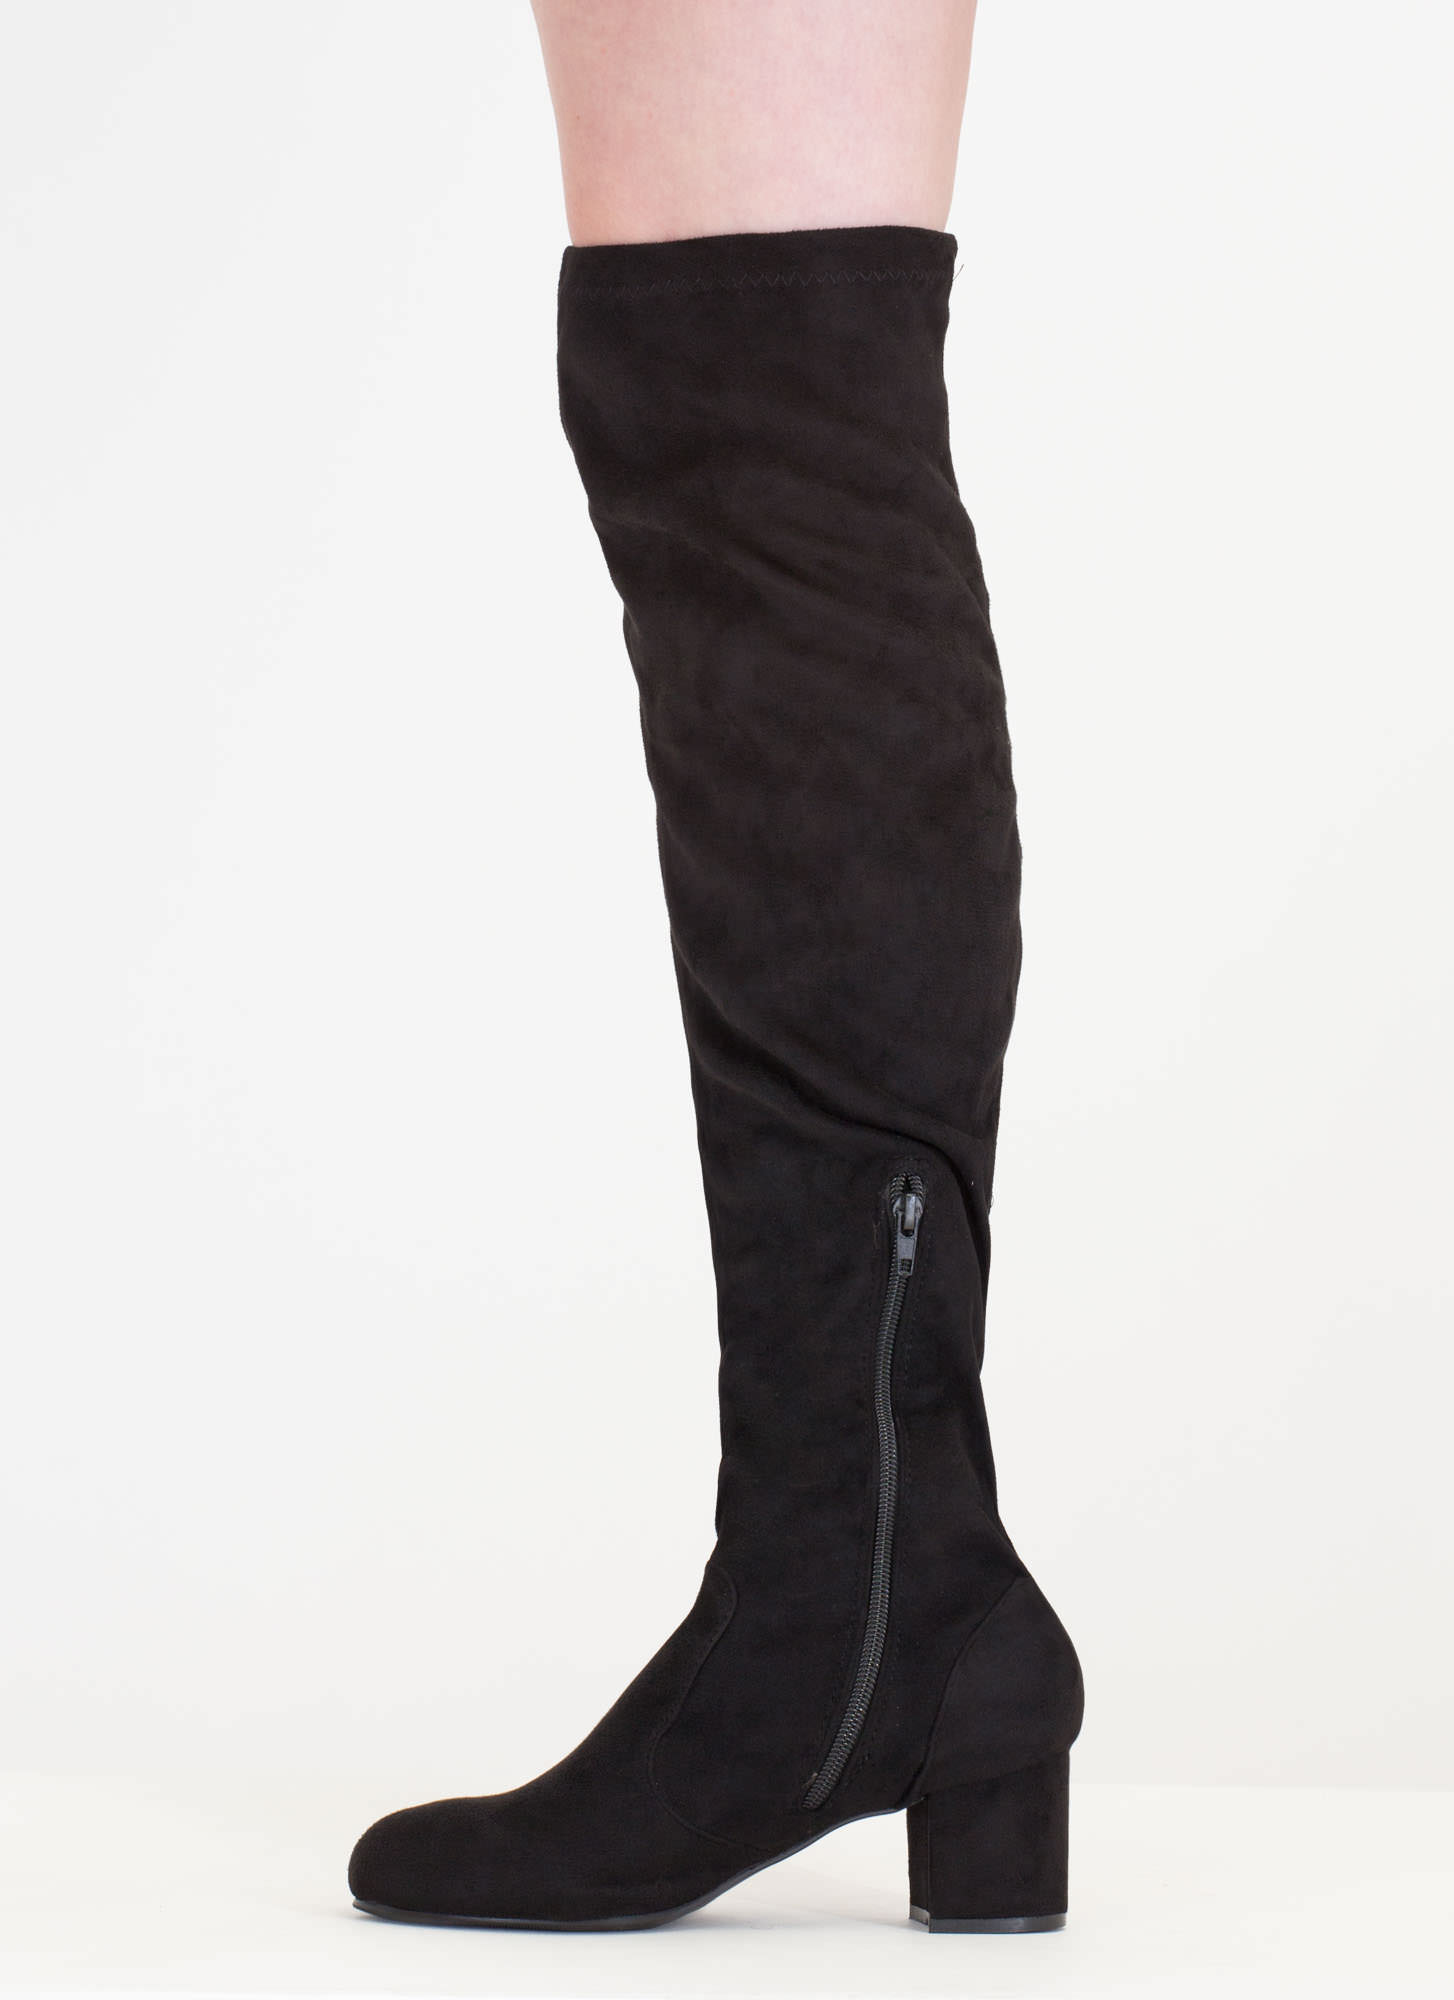 Thigh high boots are over the knee boots that can switch up your outfit instantly. They are a closet gem as they can range looks from skinny jeans, midi skirts, or long sleeved sweater fbcpmhoe.cf them with a skirt or a dress for that sexy snip of skin instead of wearing stockings.